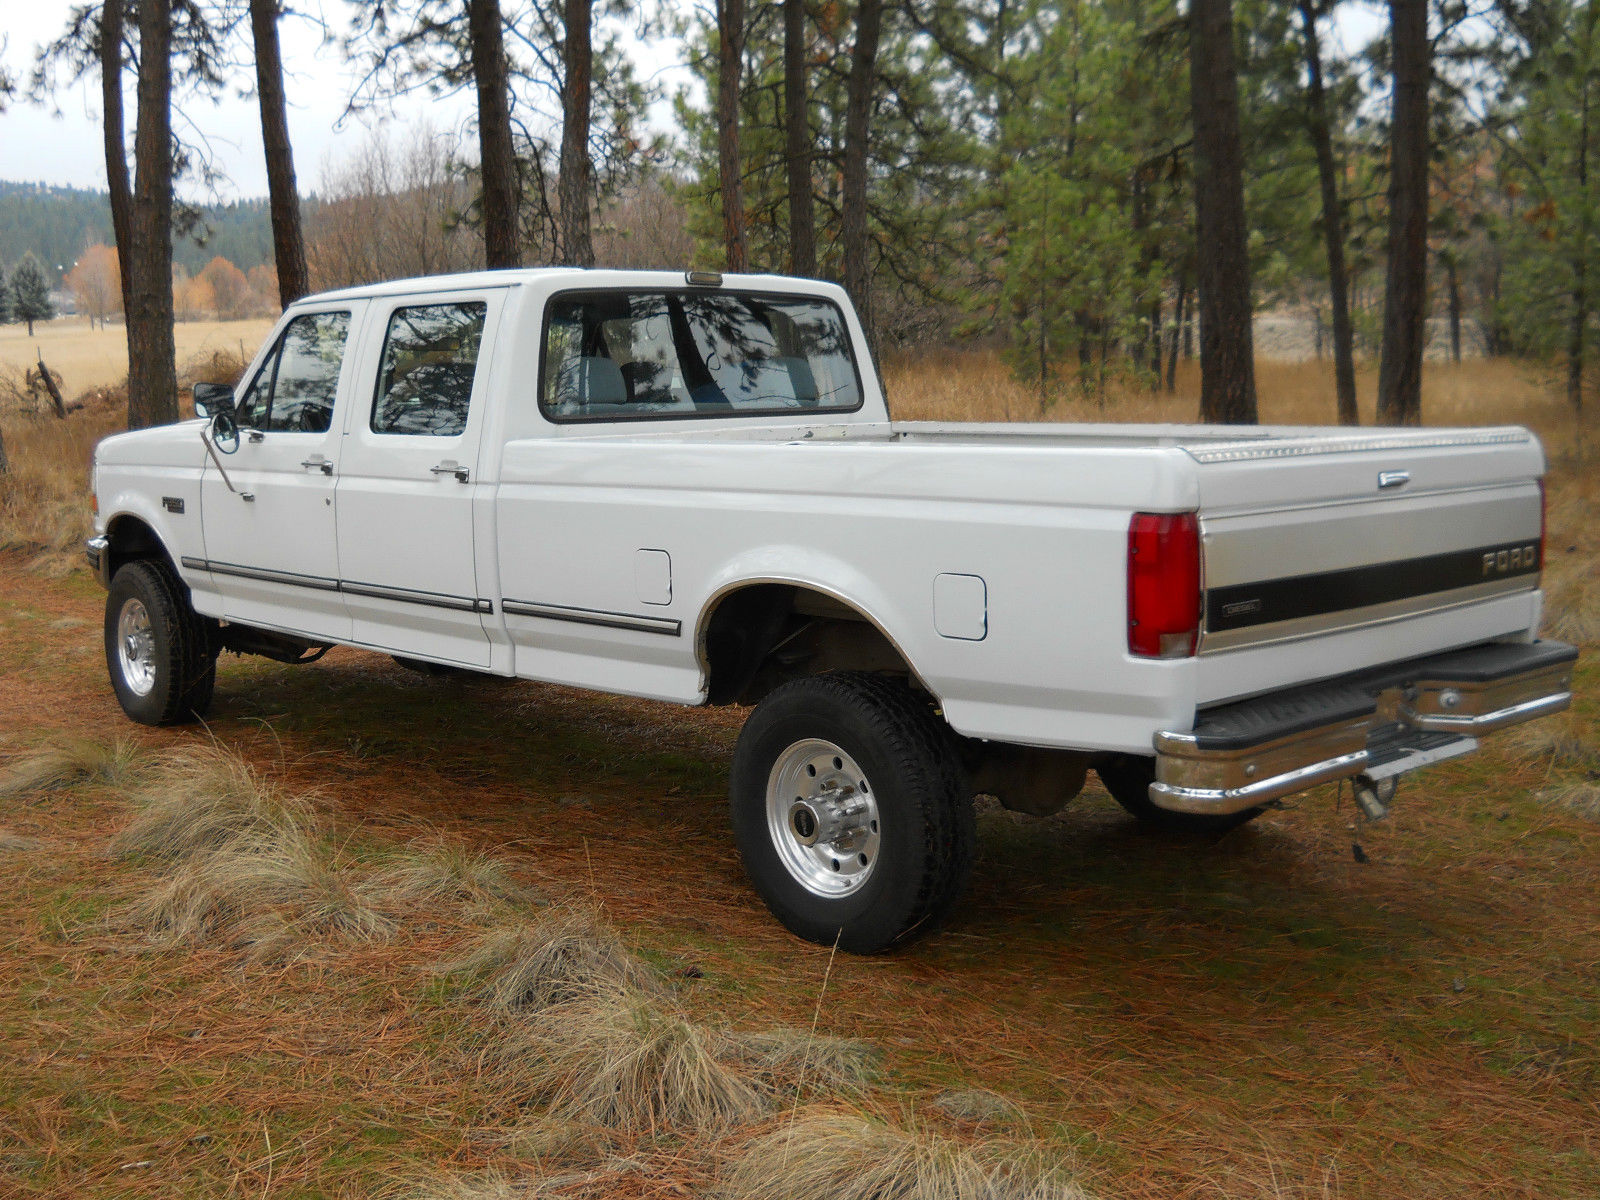 1993 ford f 350 xlt crew cab 7 3 diesel idi 4x4 no reserve. Black Bedroom Furniture Sets. Home Design Ideas